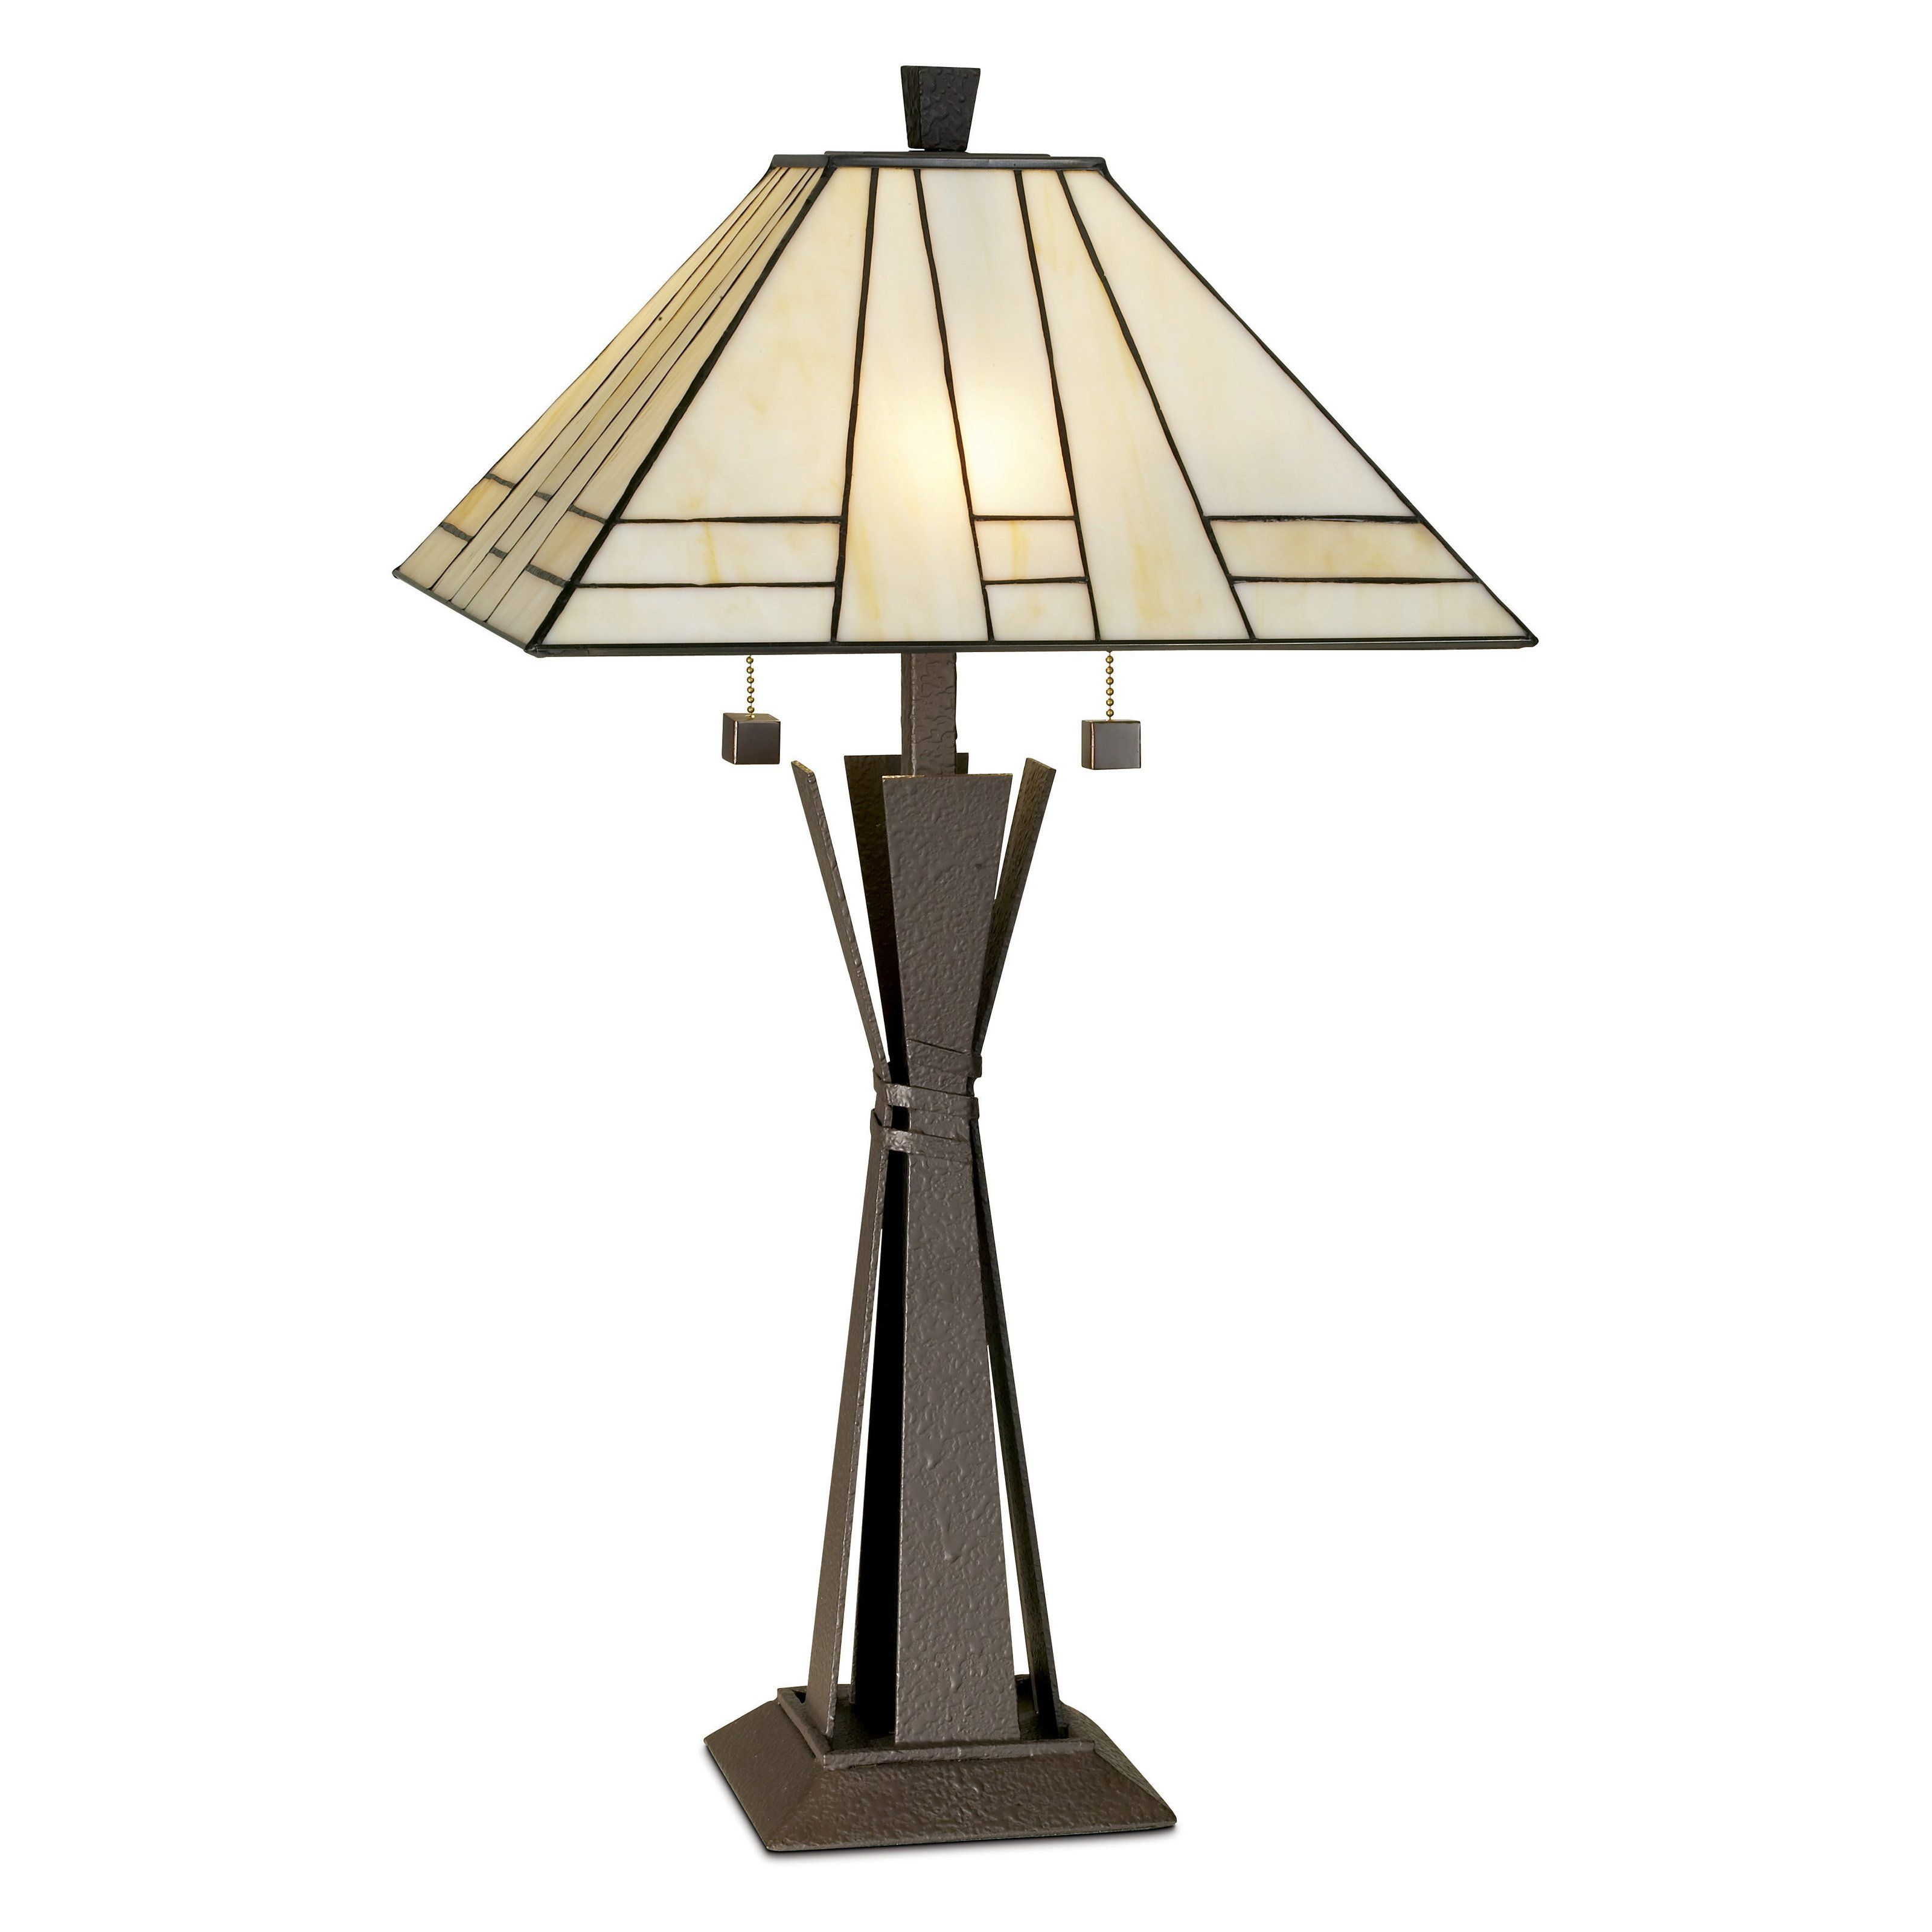 Glass Lamp Tables Ireland Pacific Coast Lighting Kathy Ireland Gallery City Craft Table Lamp